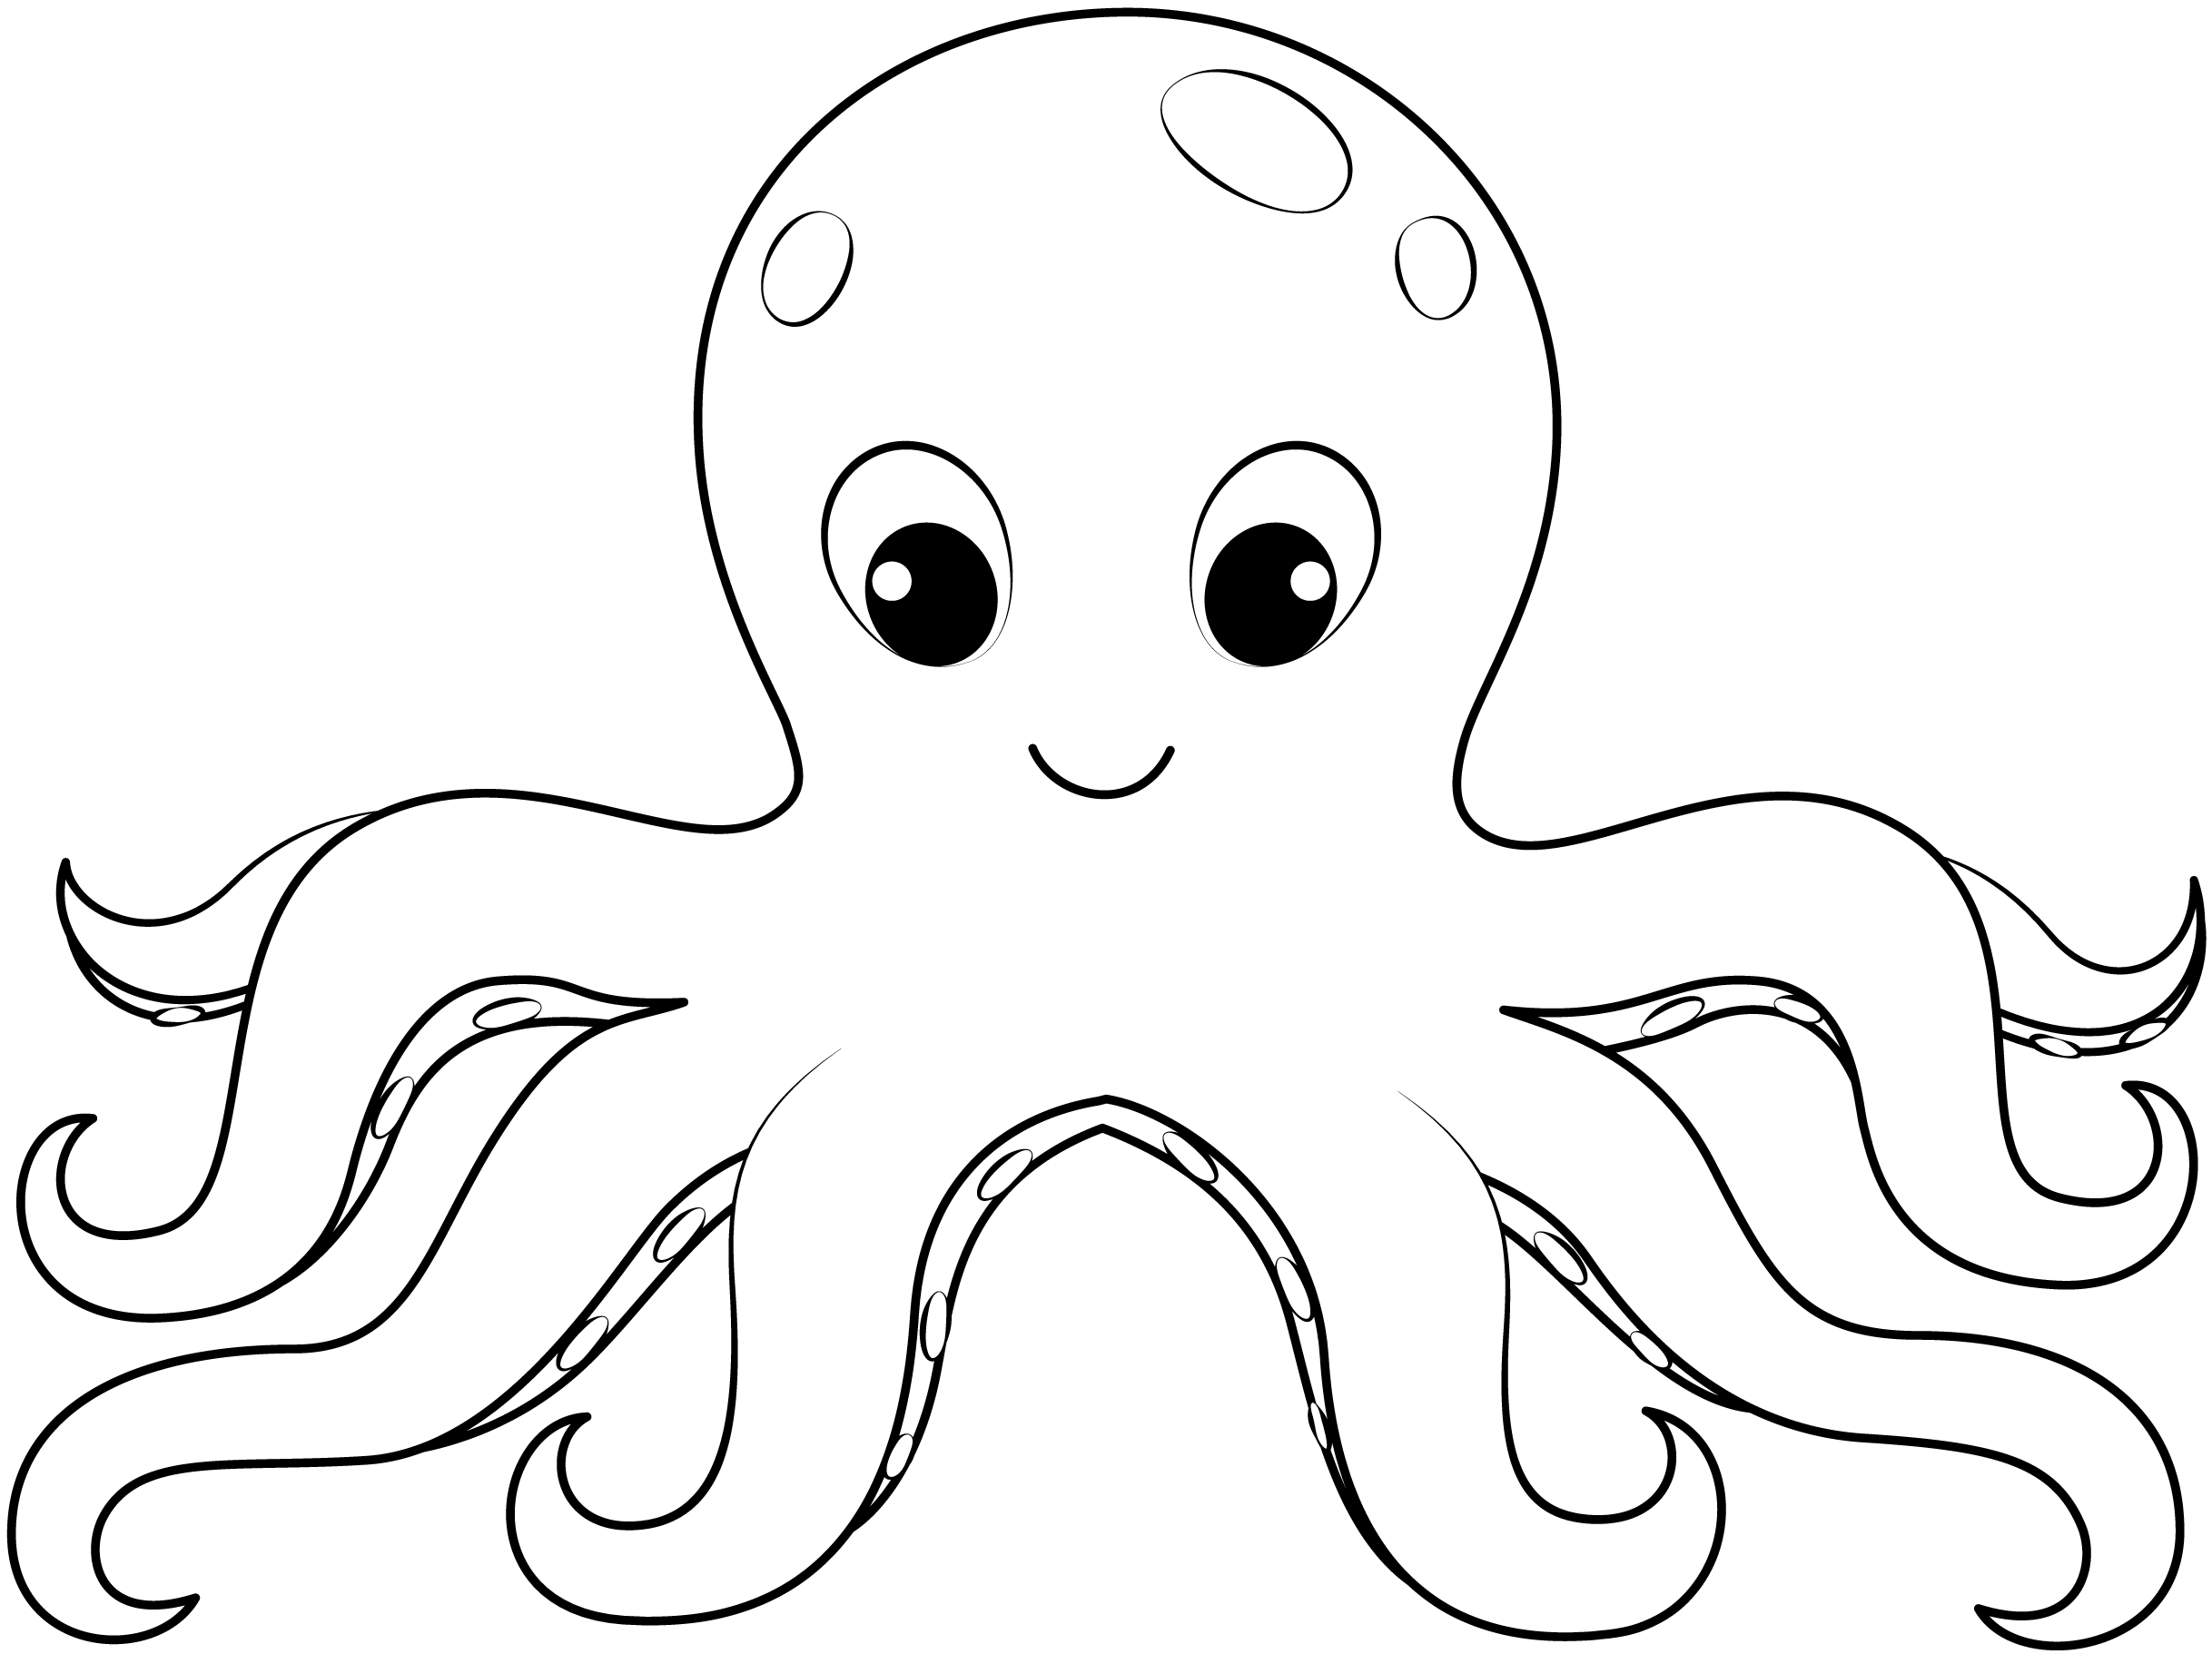 colouring picture of octopus free printable octopus coloring pages for kids octopus colouring of picture 1 1